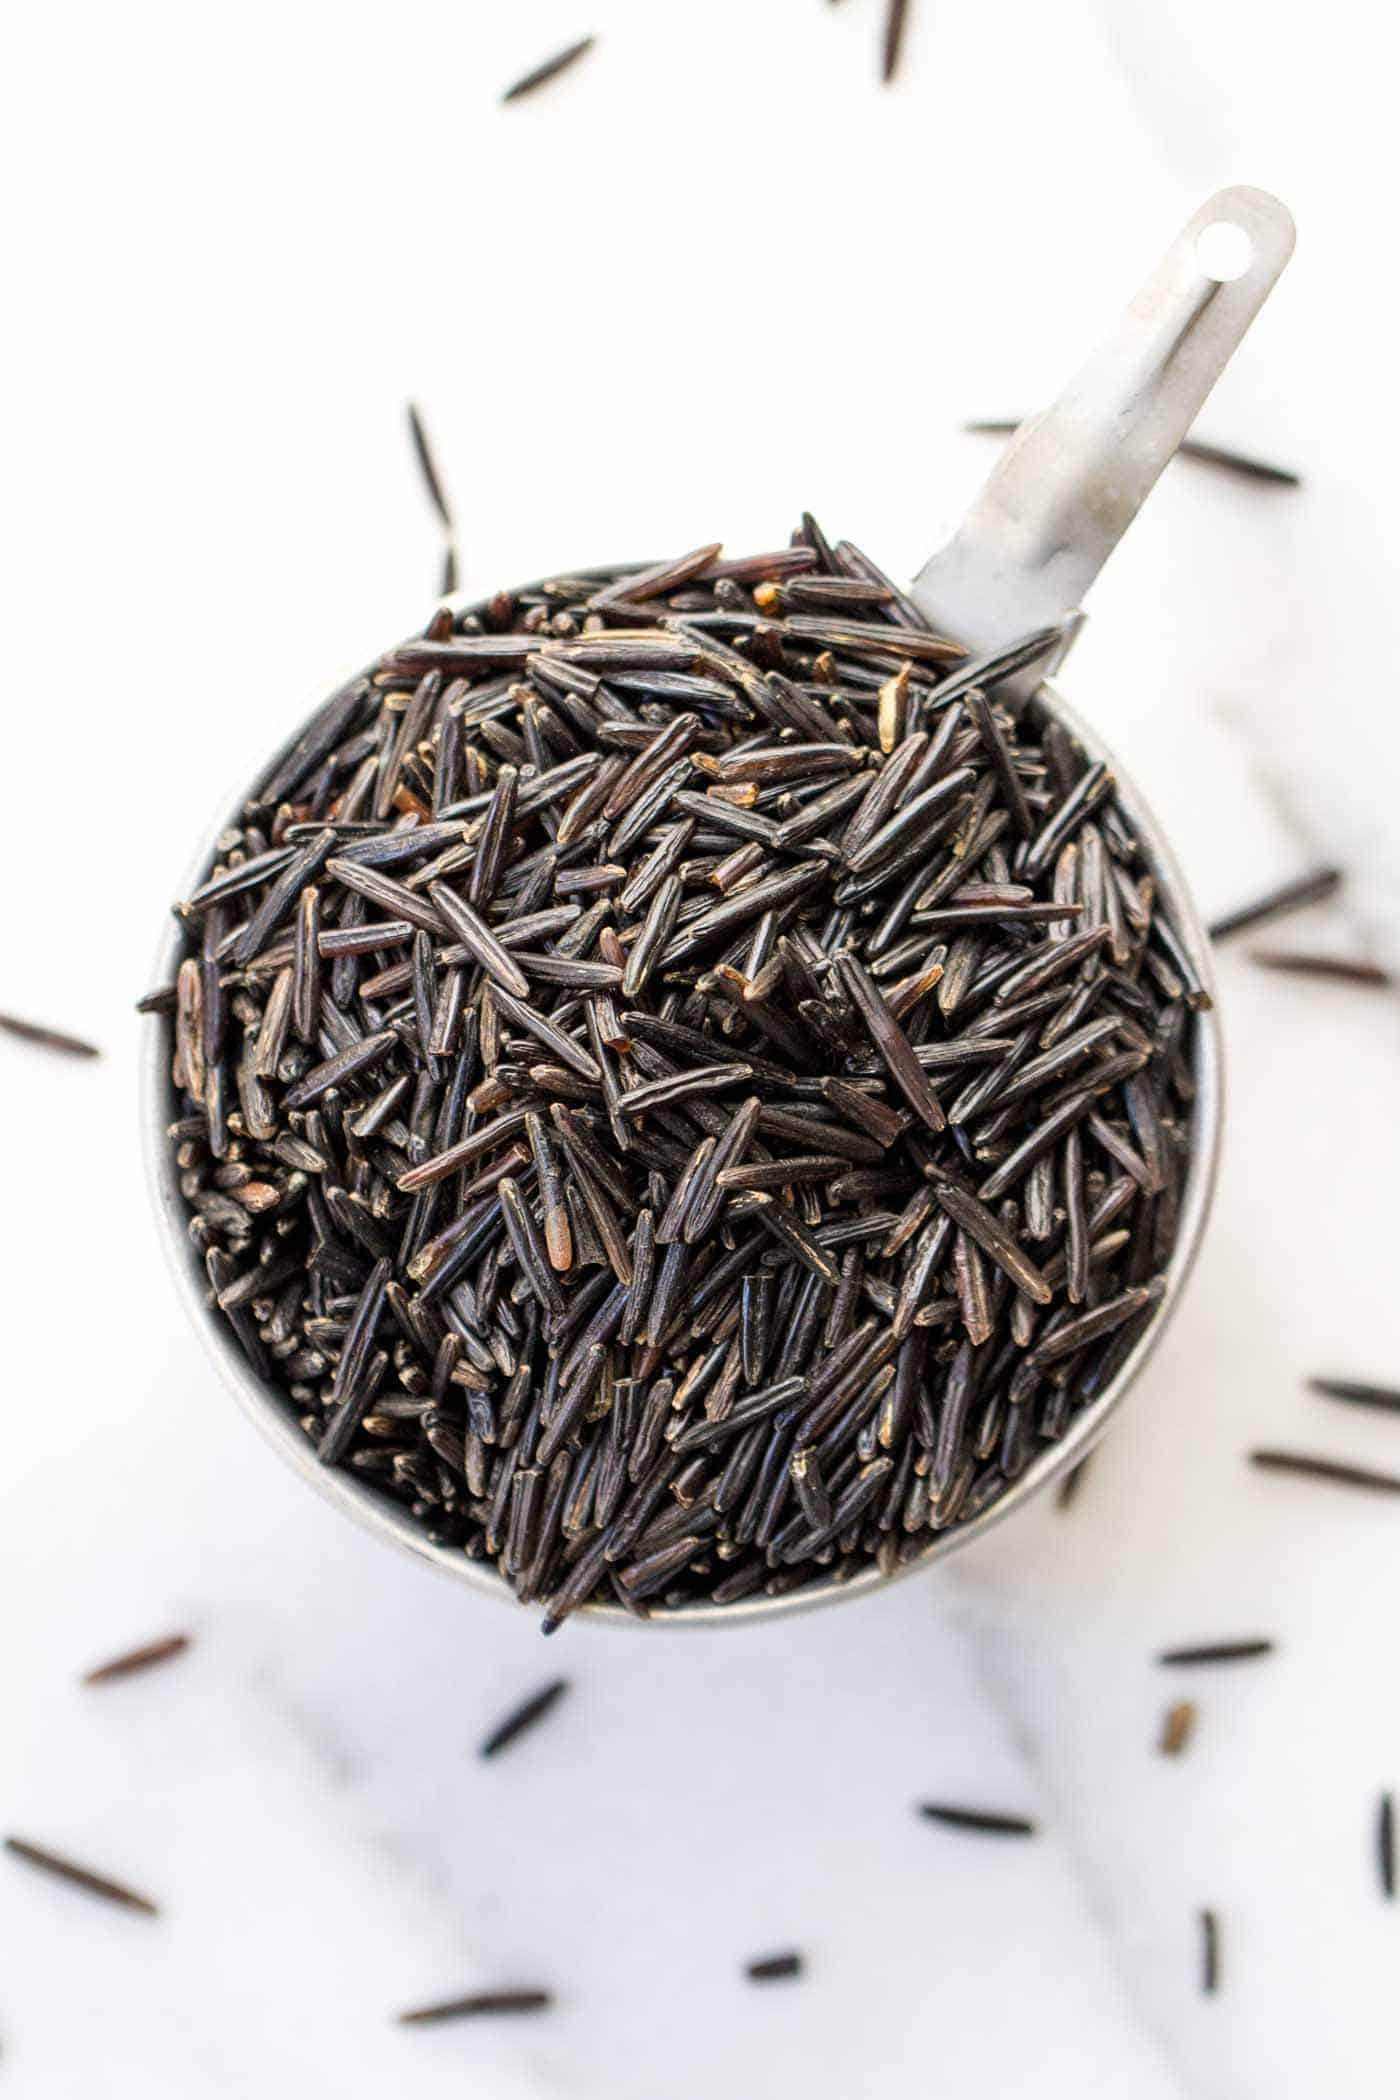 How to Keep Wild Rice